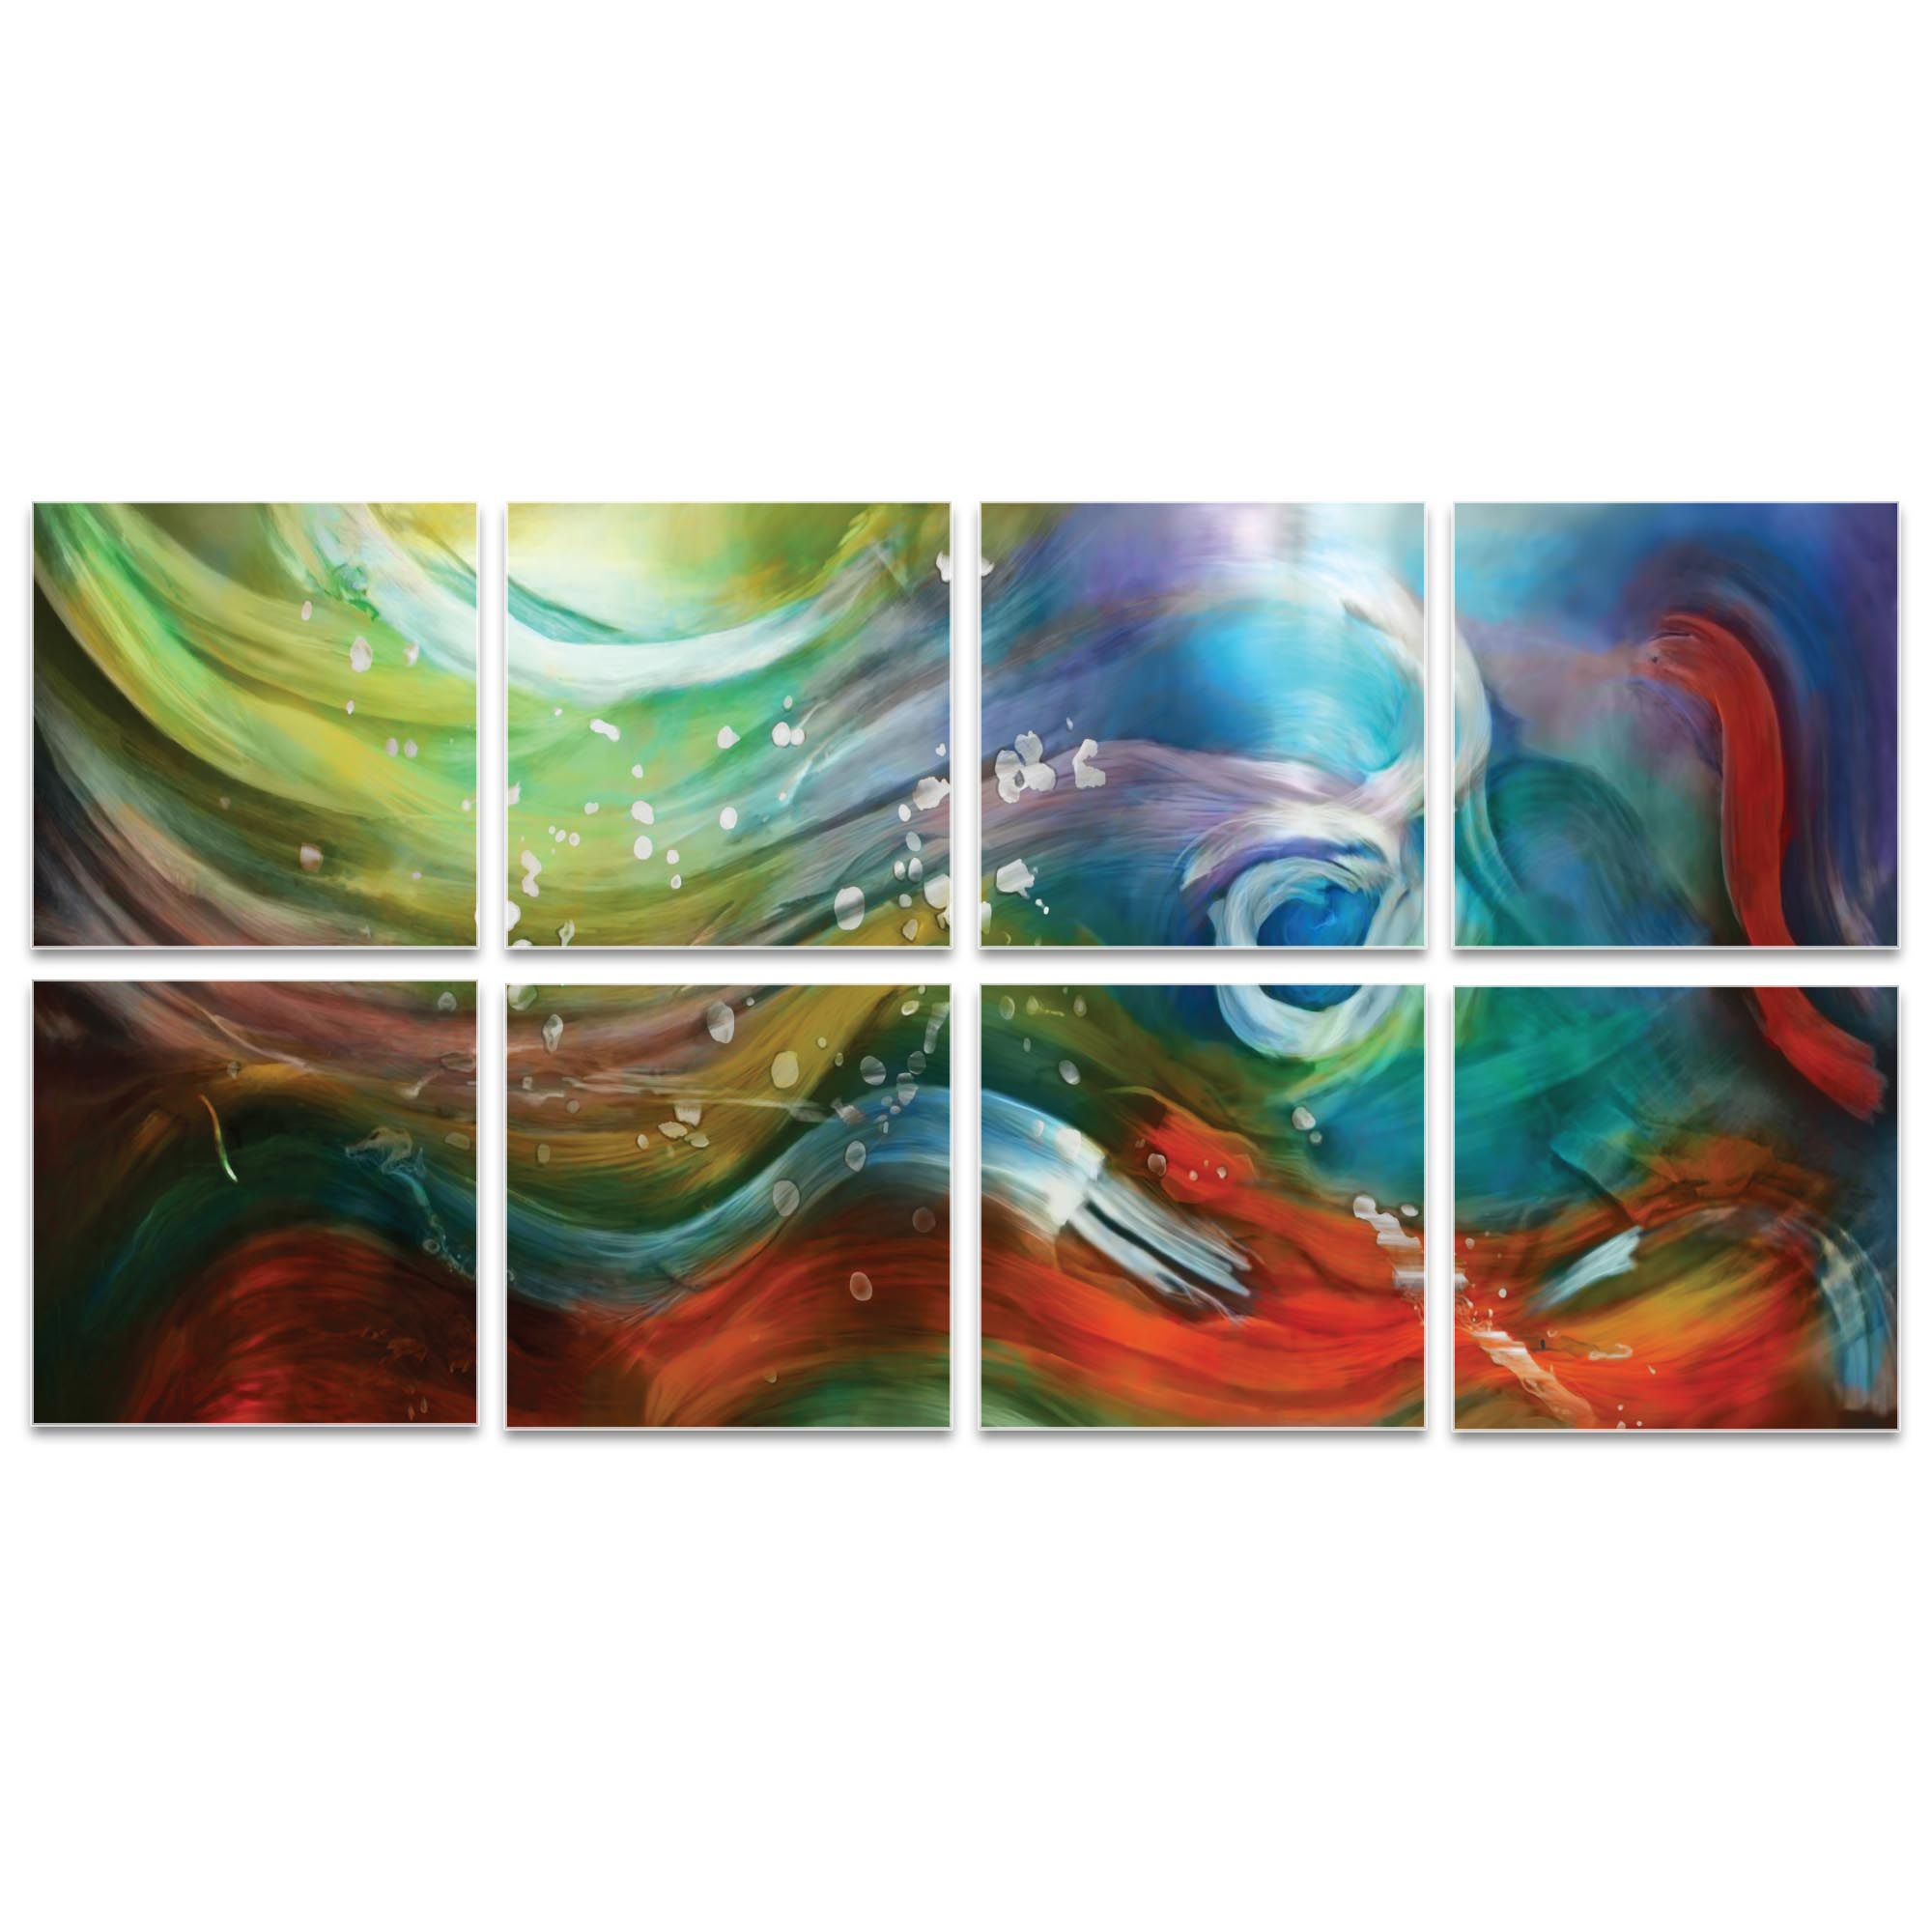 Esne Windows 51x25in. Metal or Acrylic Abstract Decor - Image 2